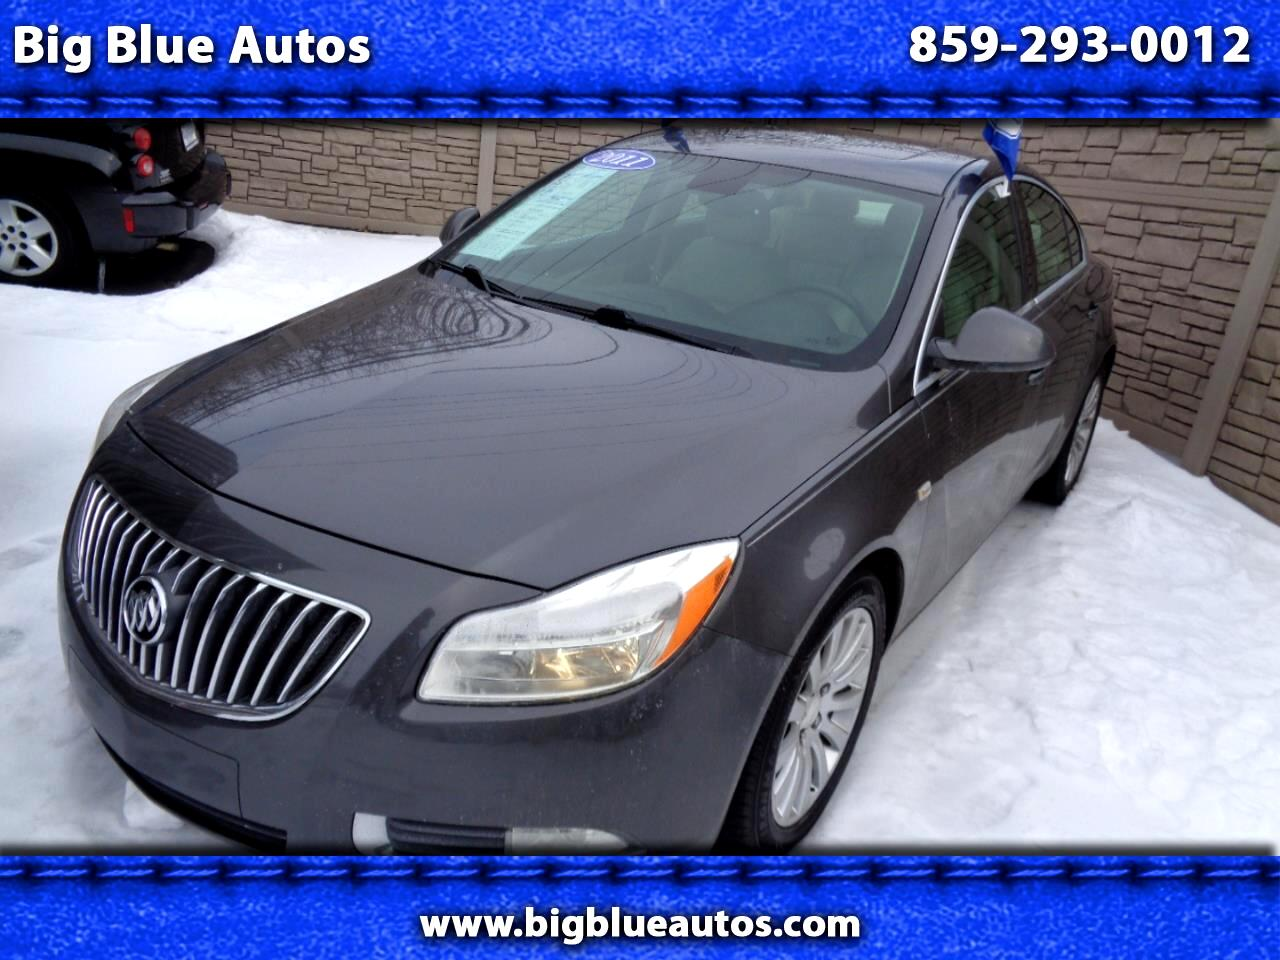 Buick Regal 4dr Sdn CXL RL4 (Russelsheim) *Ltd Avail* 2011